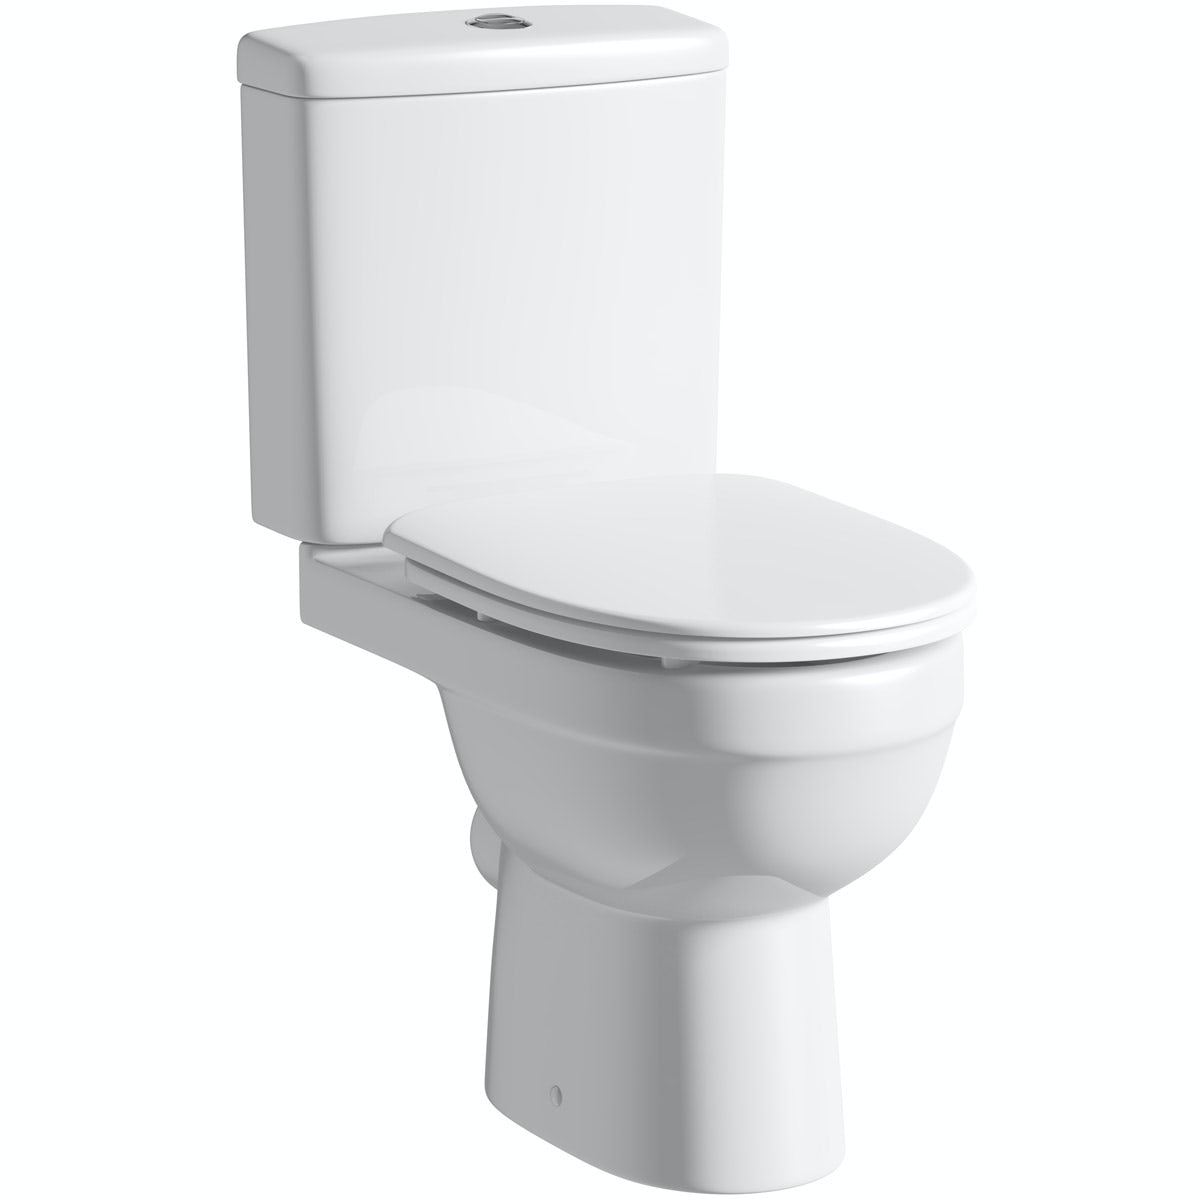 Orchard Eden close coupled toilet with luxury soft close seat with pan connector